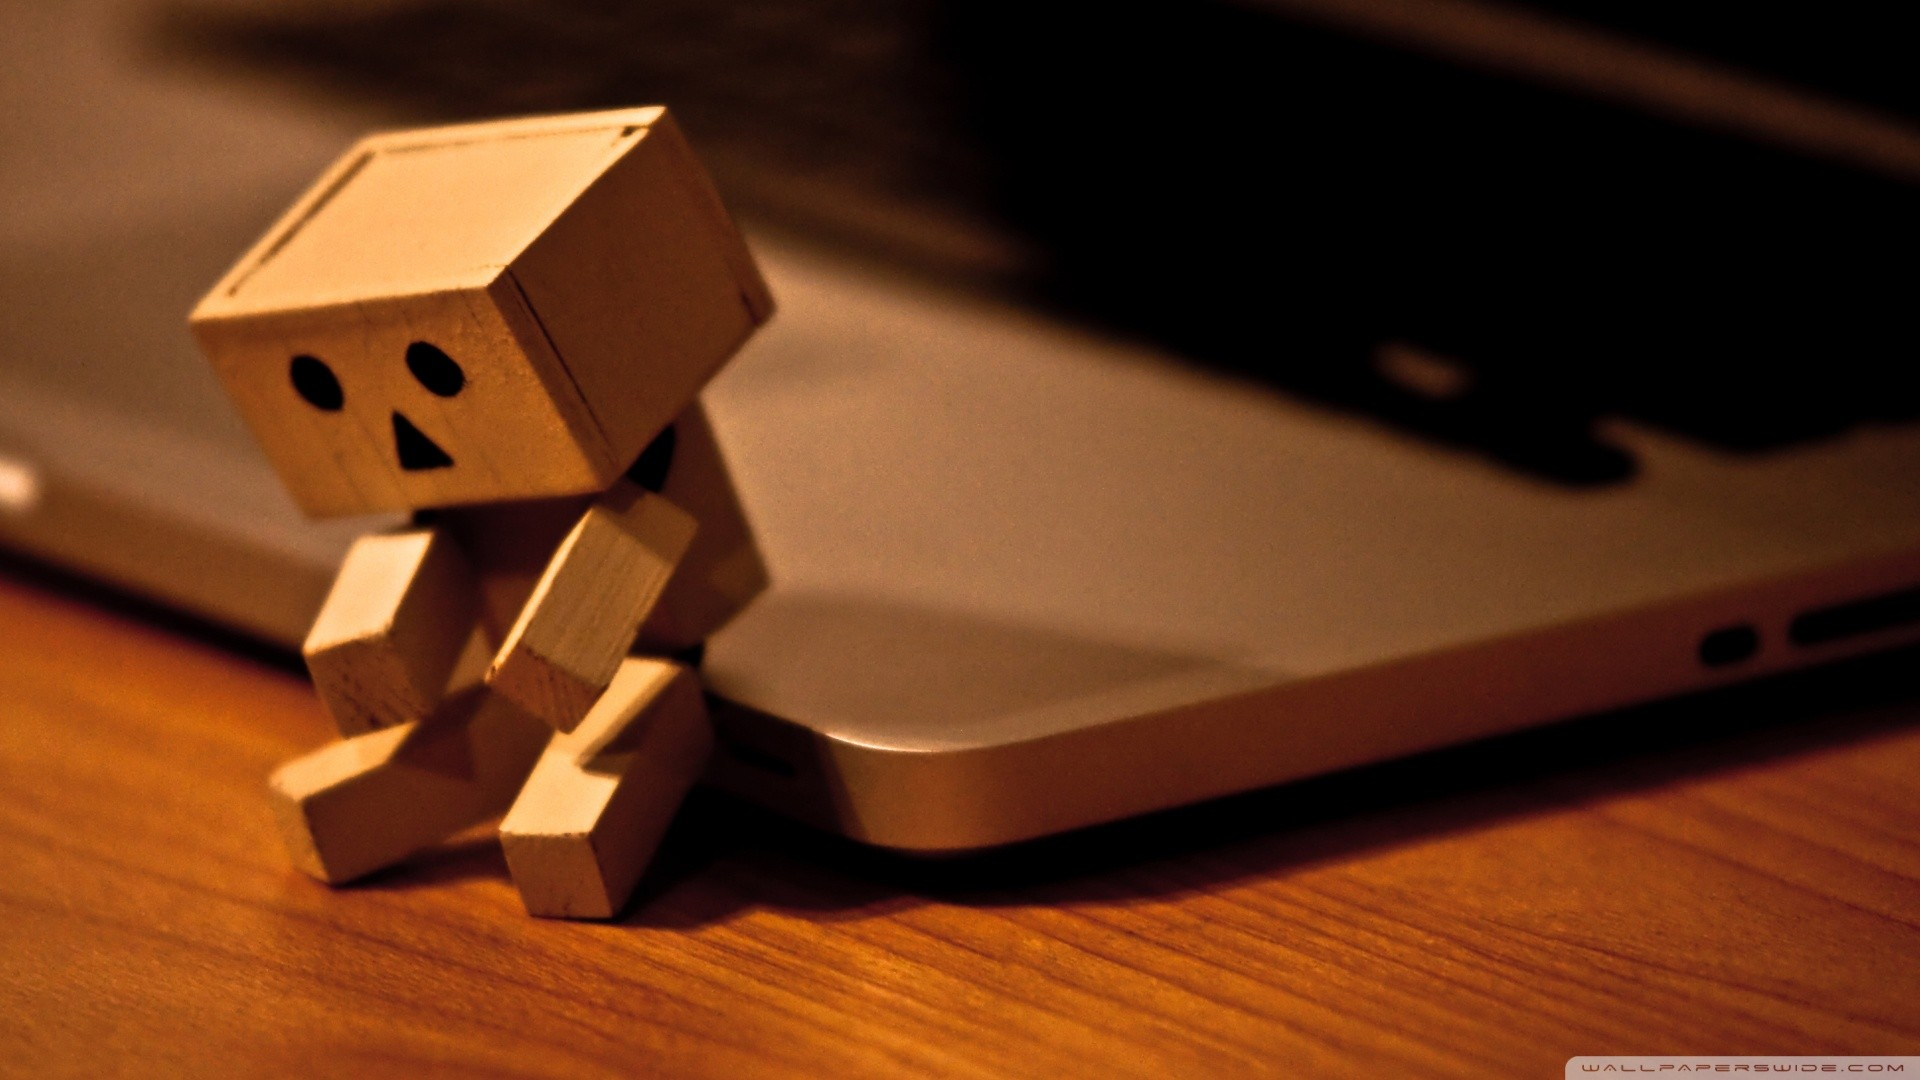 Facebook Cover Danbo Sad Alone   Sad Cover For Facebook 953975 1920x1080